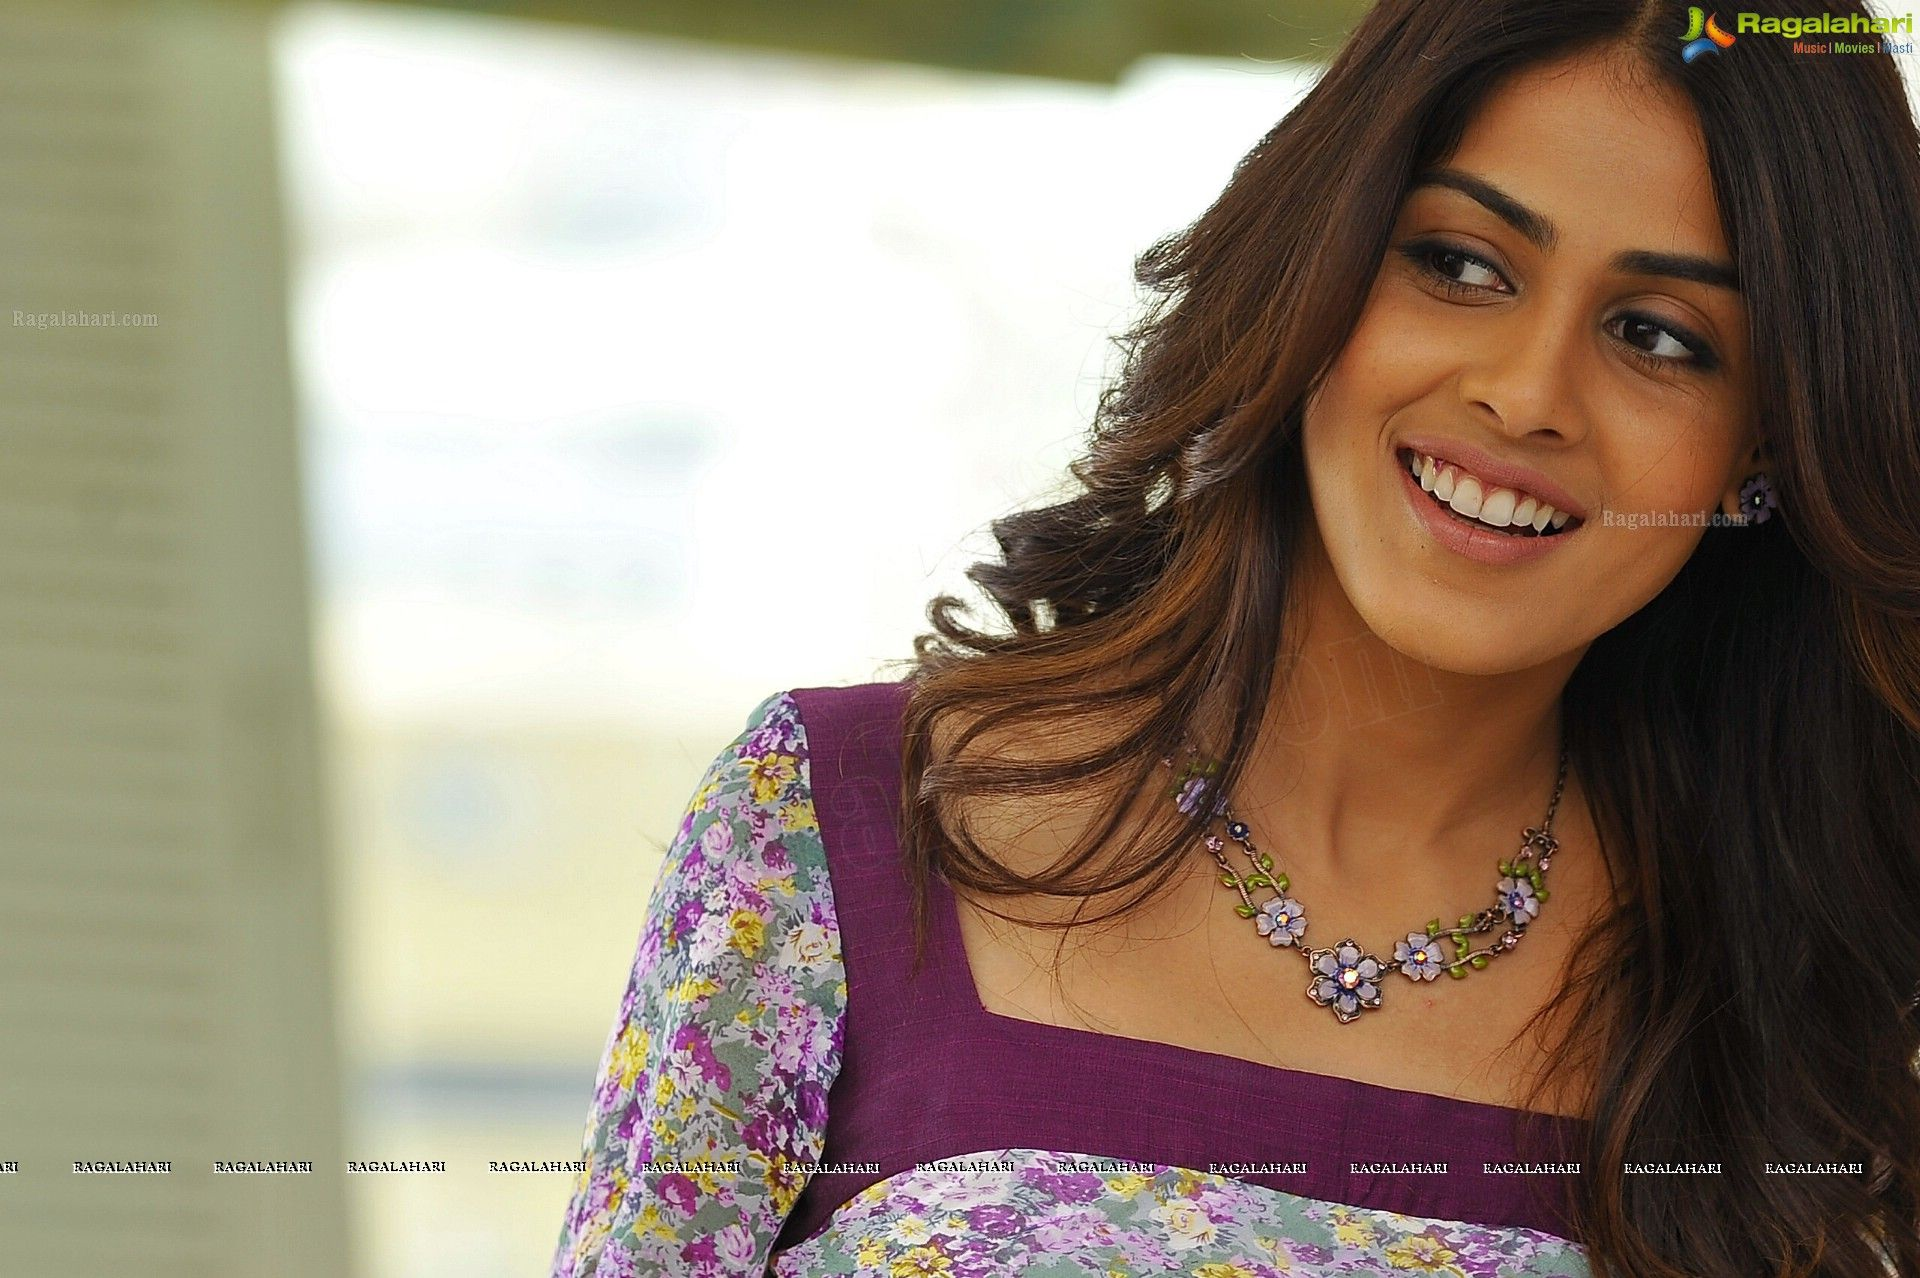 best genelia dsouza wallpapers free download ibutters | wallpapers